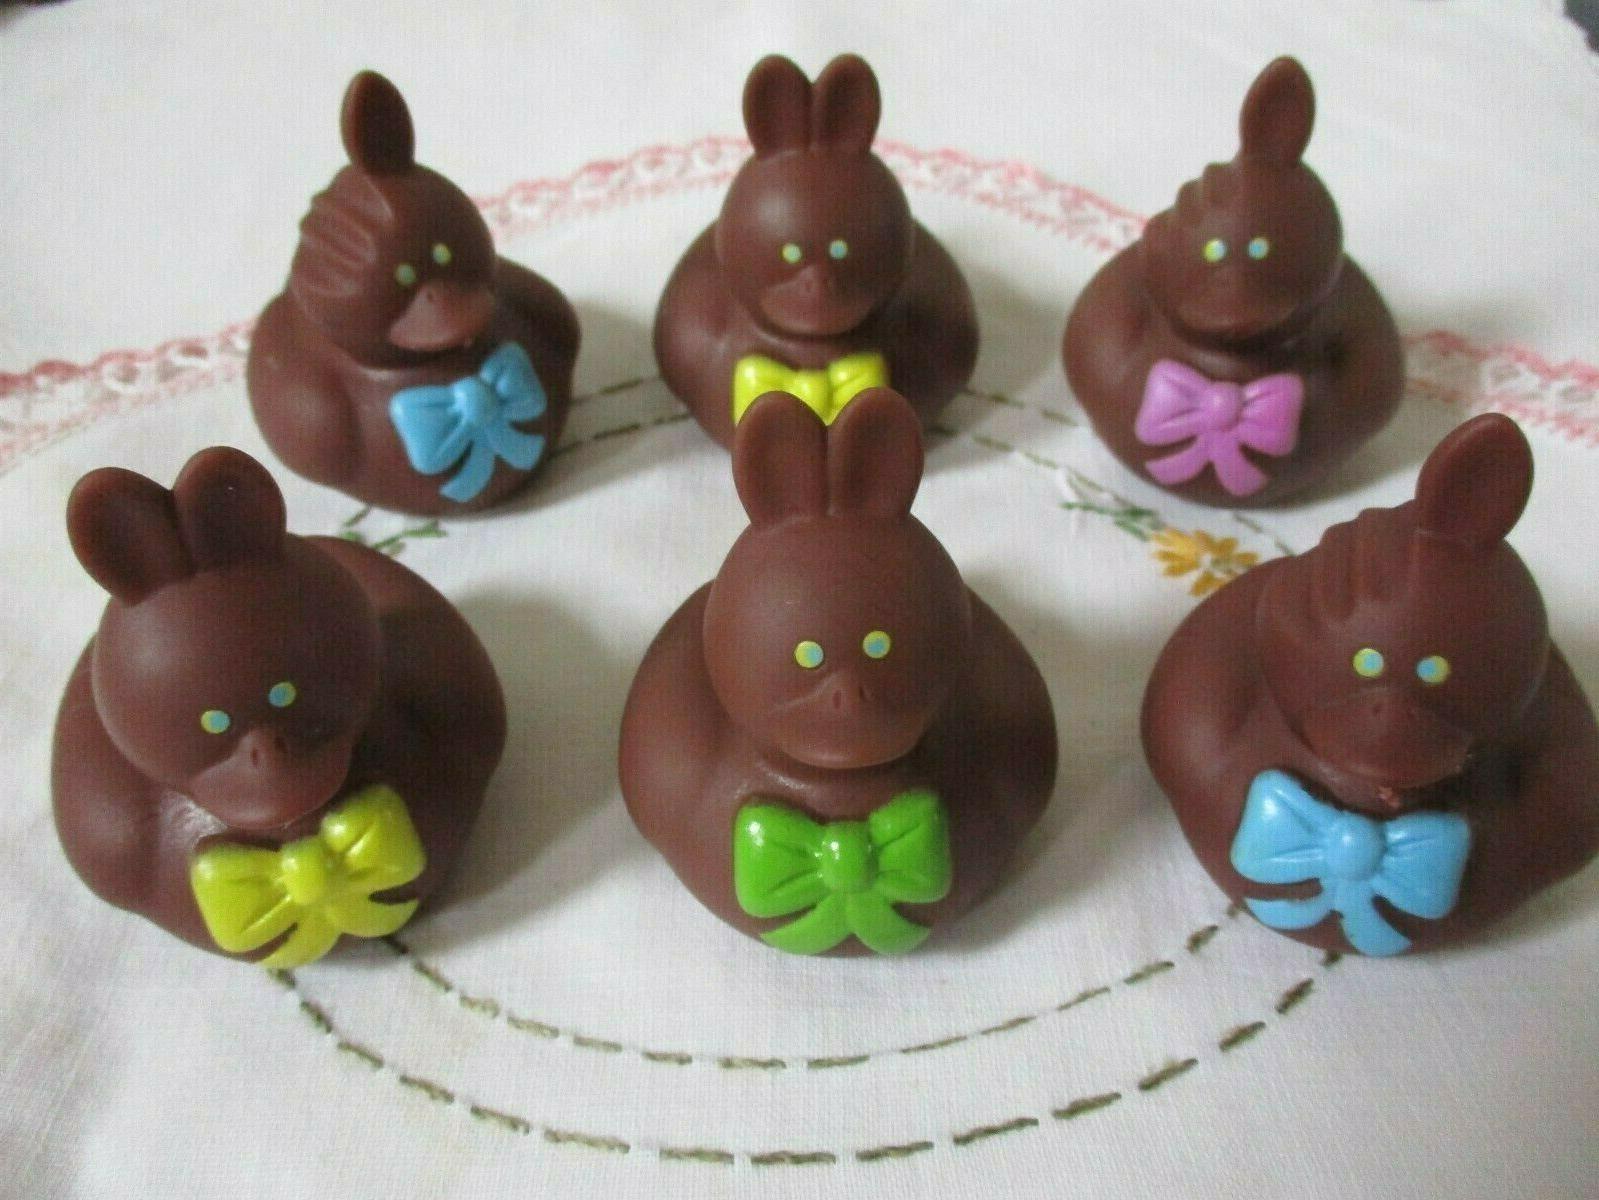 *SALE* 6 Chocolate Easter Bunny Animals Assortment Decor